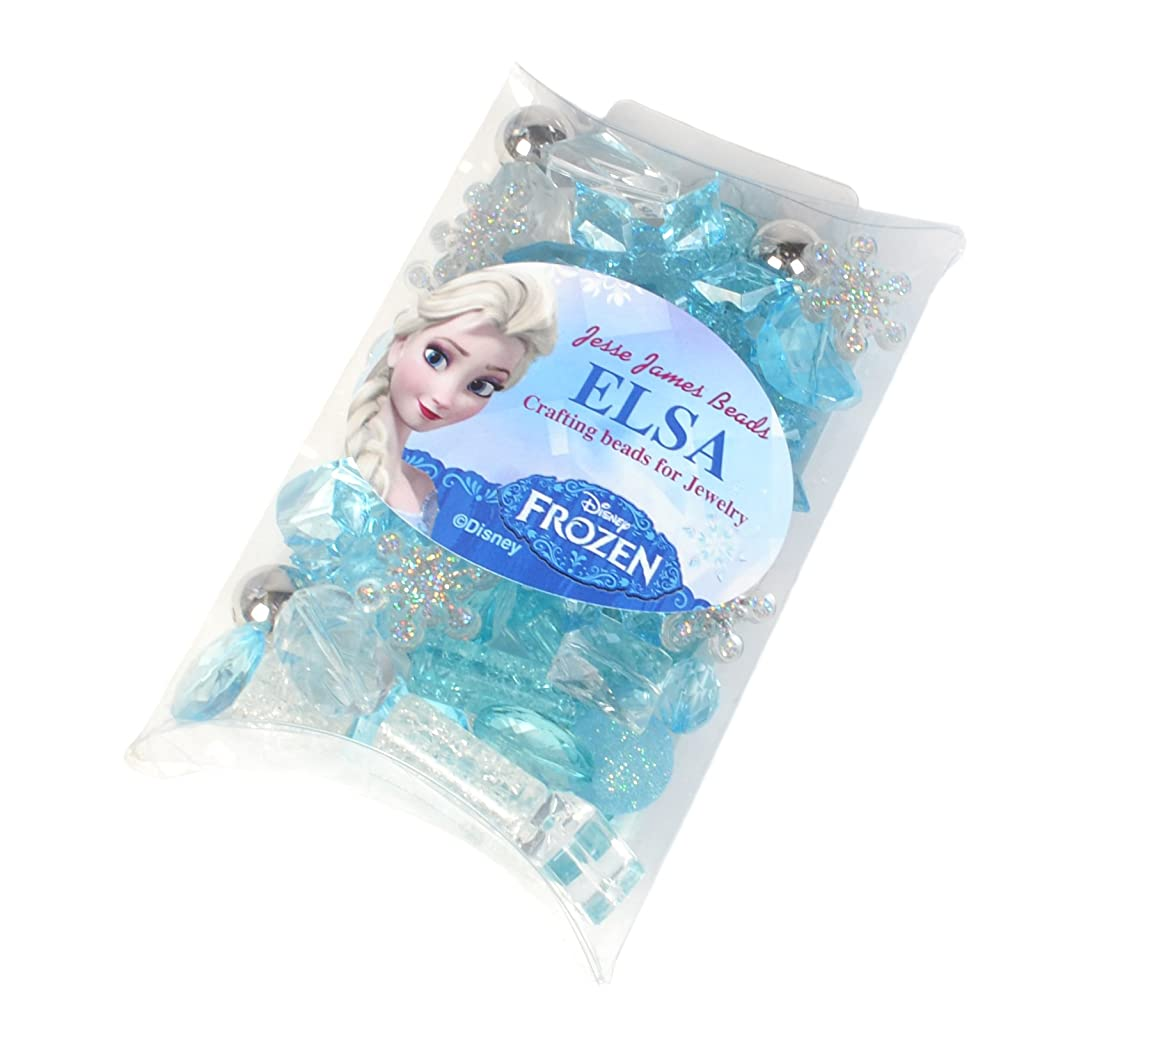 Jesse James Beads Elsa Collection Disney Frozen Craft Beads